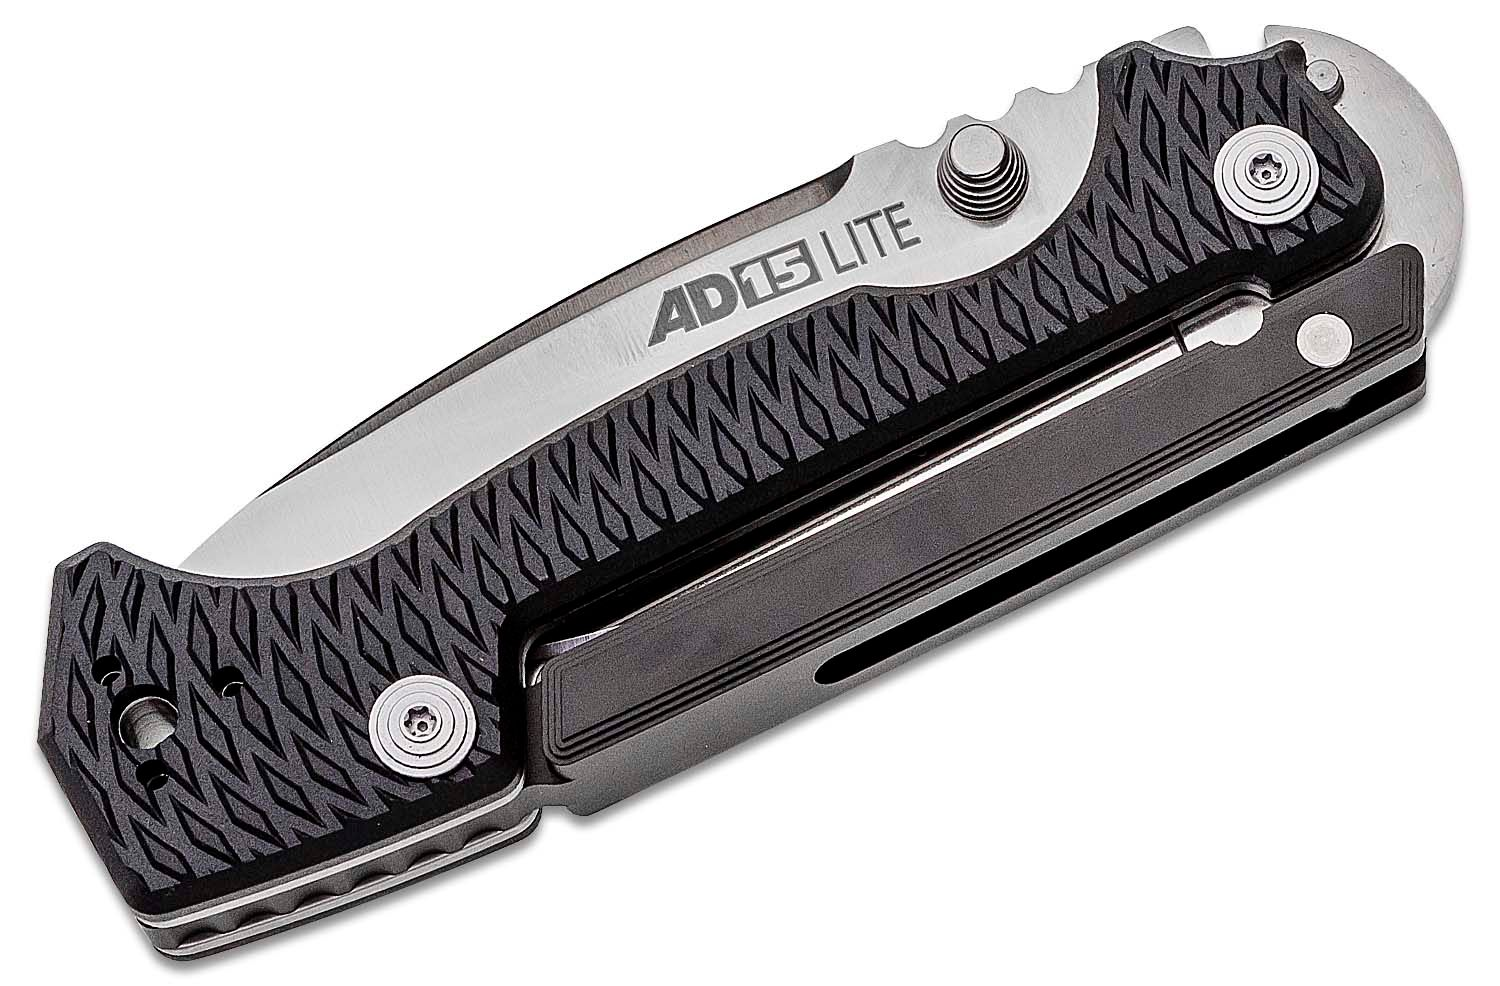 New Budget Friendly AD-15 Lite Introduced by Cold Steel